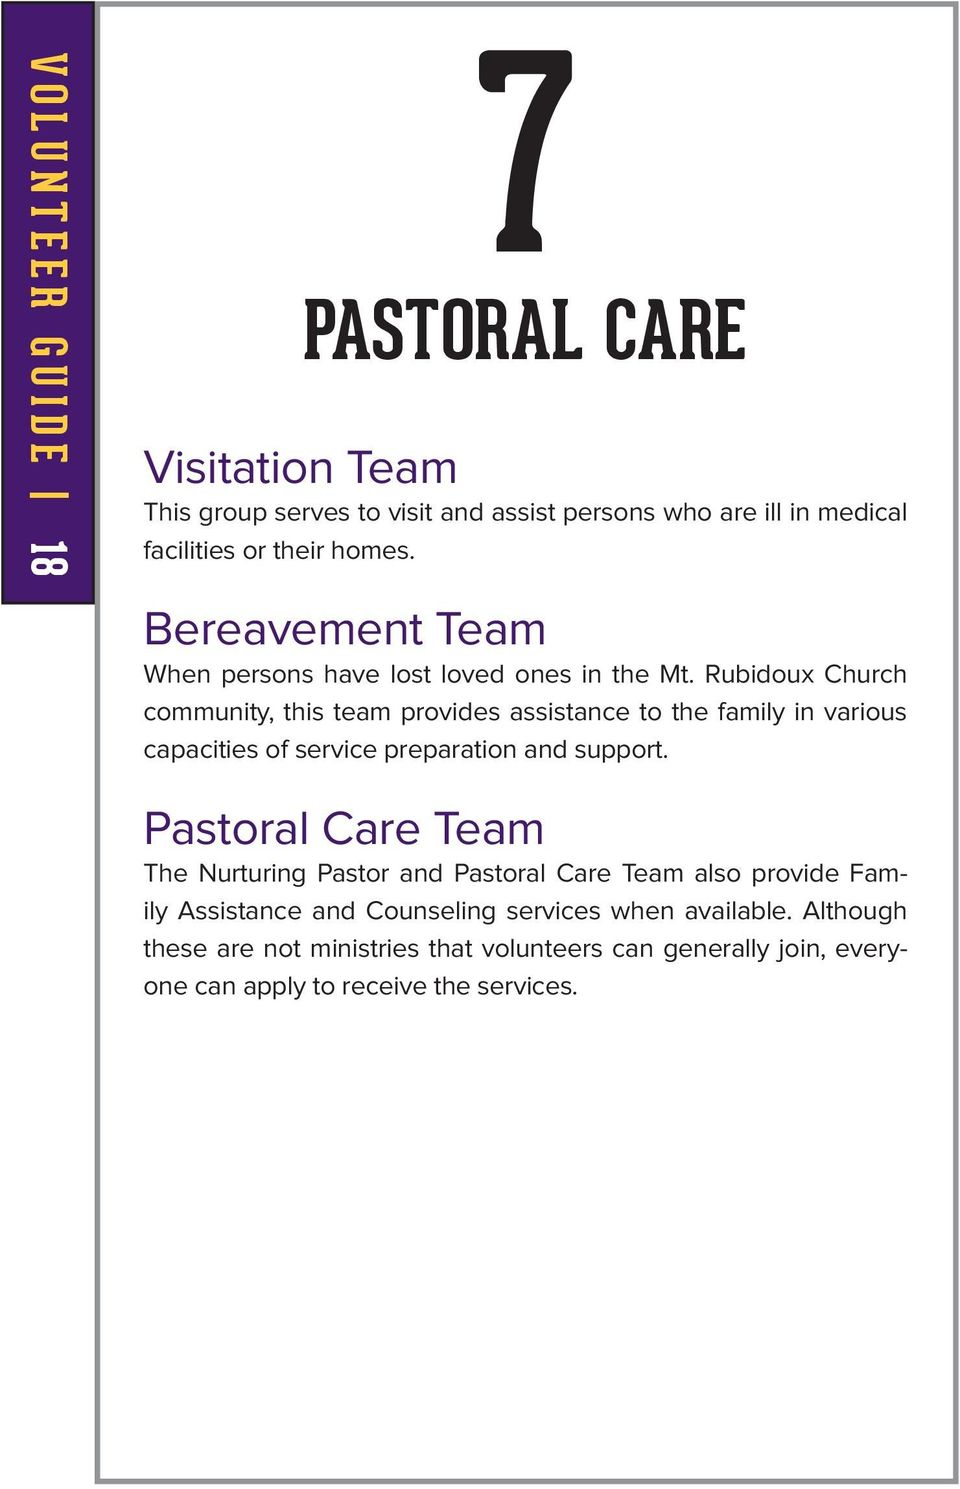 Rubidoux Church community, this team provides assistance to the family in various capacities of service preparation and support.